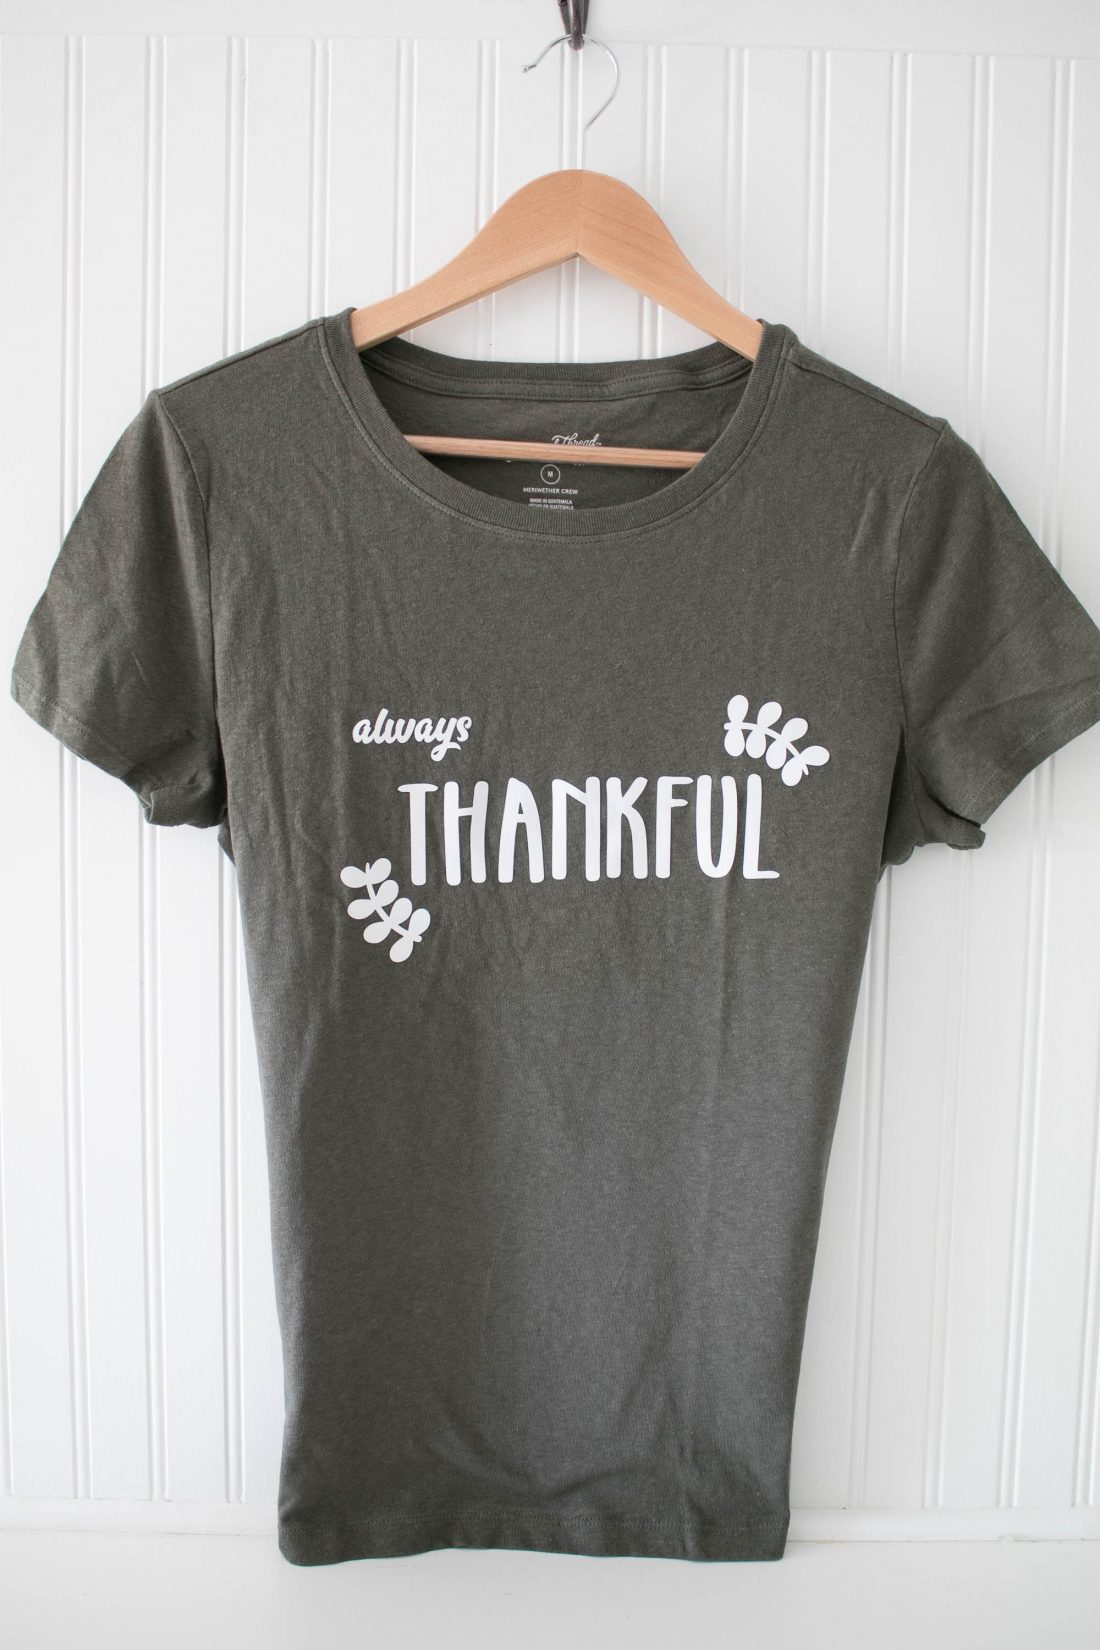 SVG files for Thanksgiving shirts or hostess gifts! Part of the Thankful printable pack on Making the World Cuter